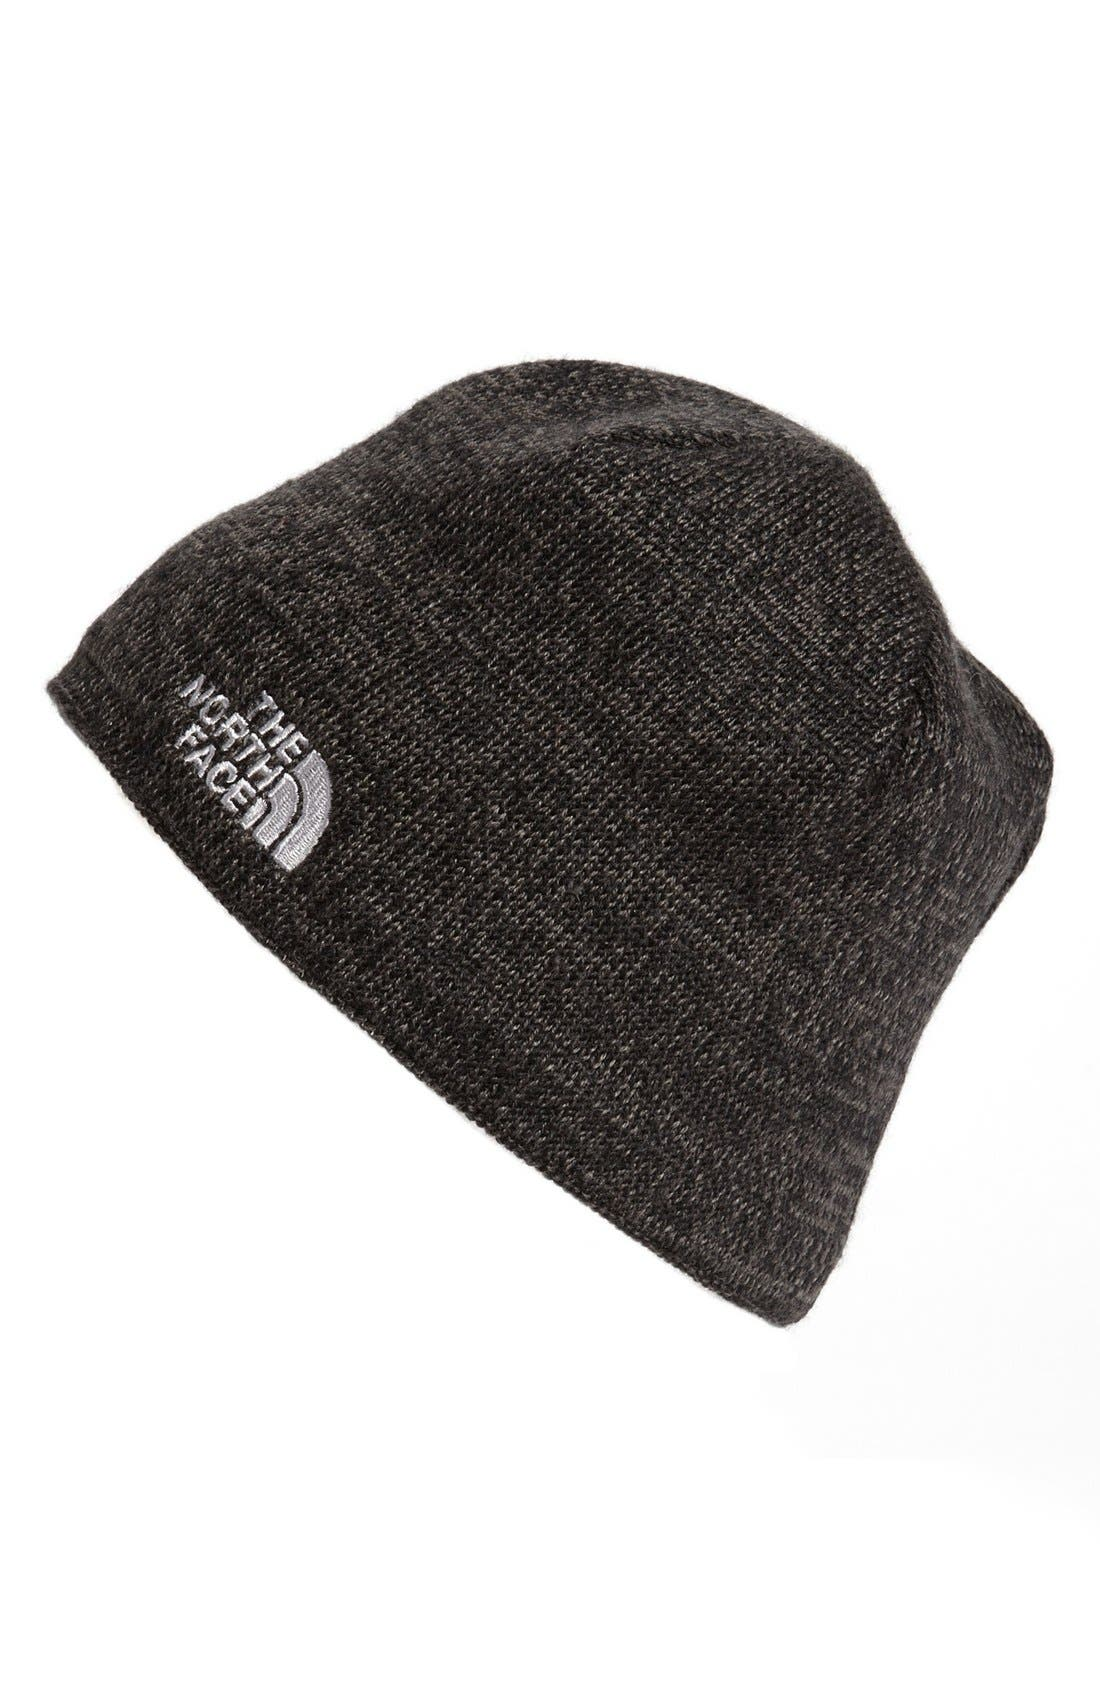 The North Face 'Jim' Beanie